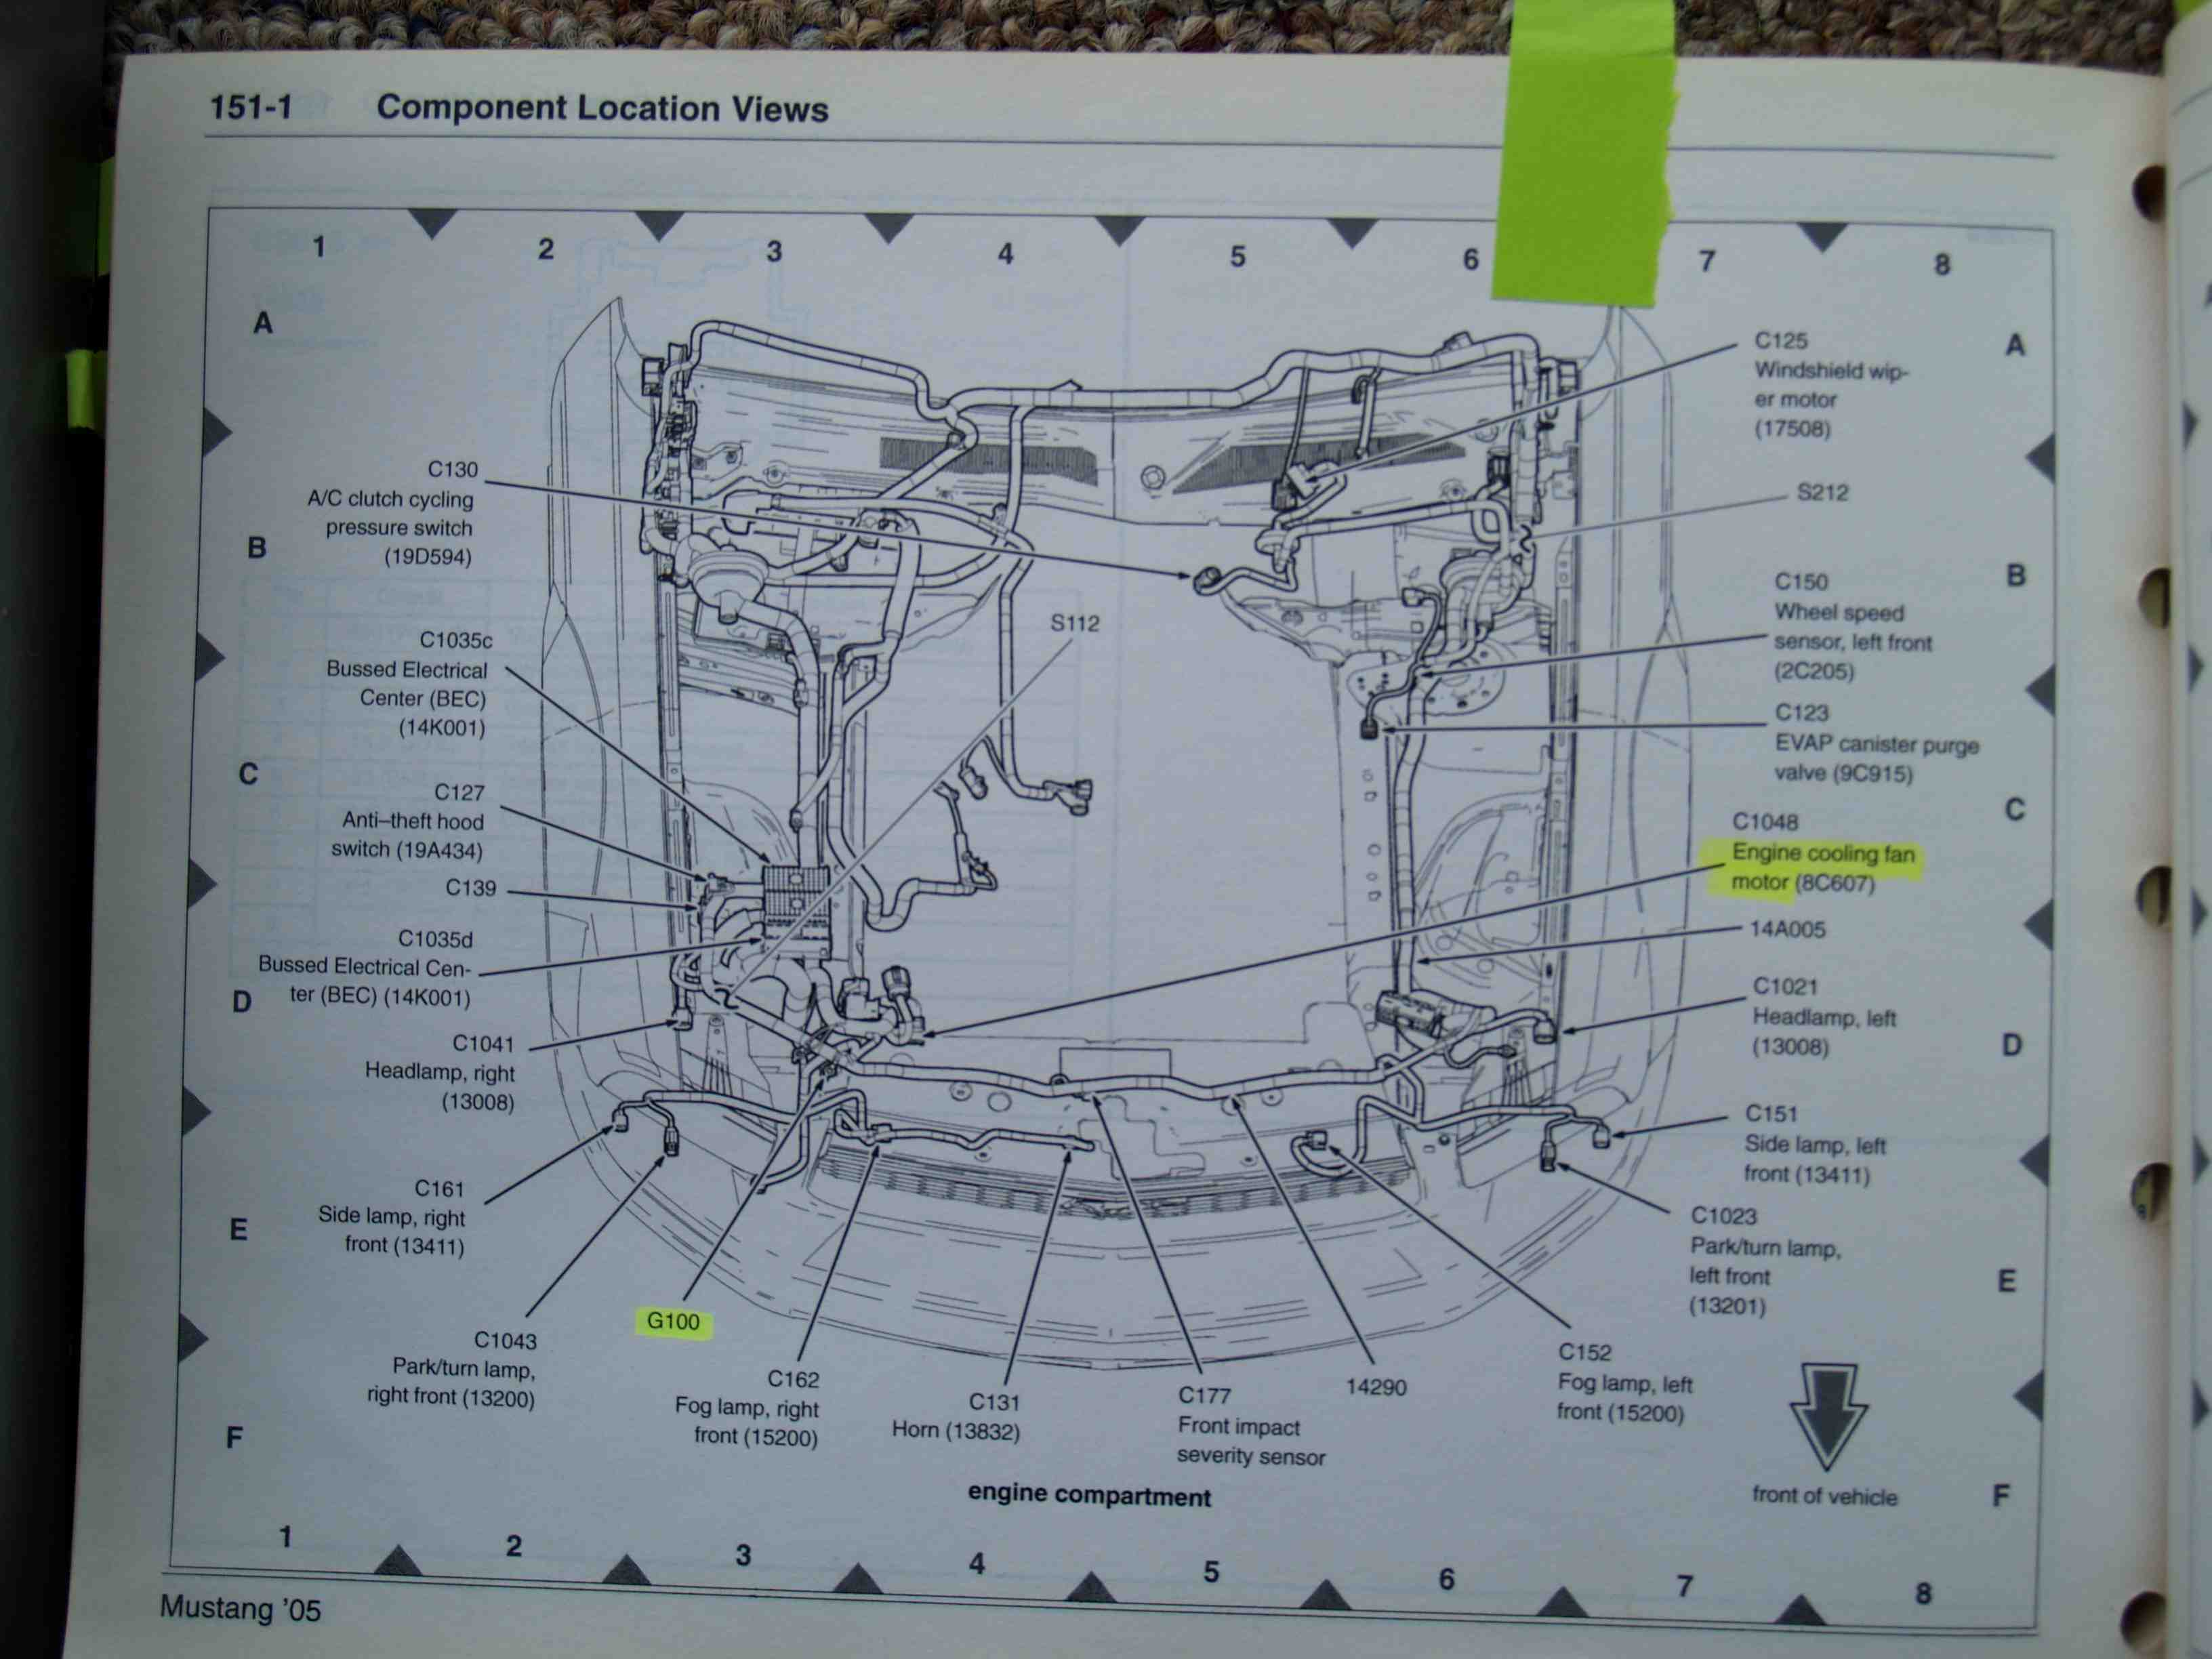 2004 Ford Mustang Radio Wiring Diagram from static-cdn.imageservice.cloud